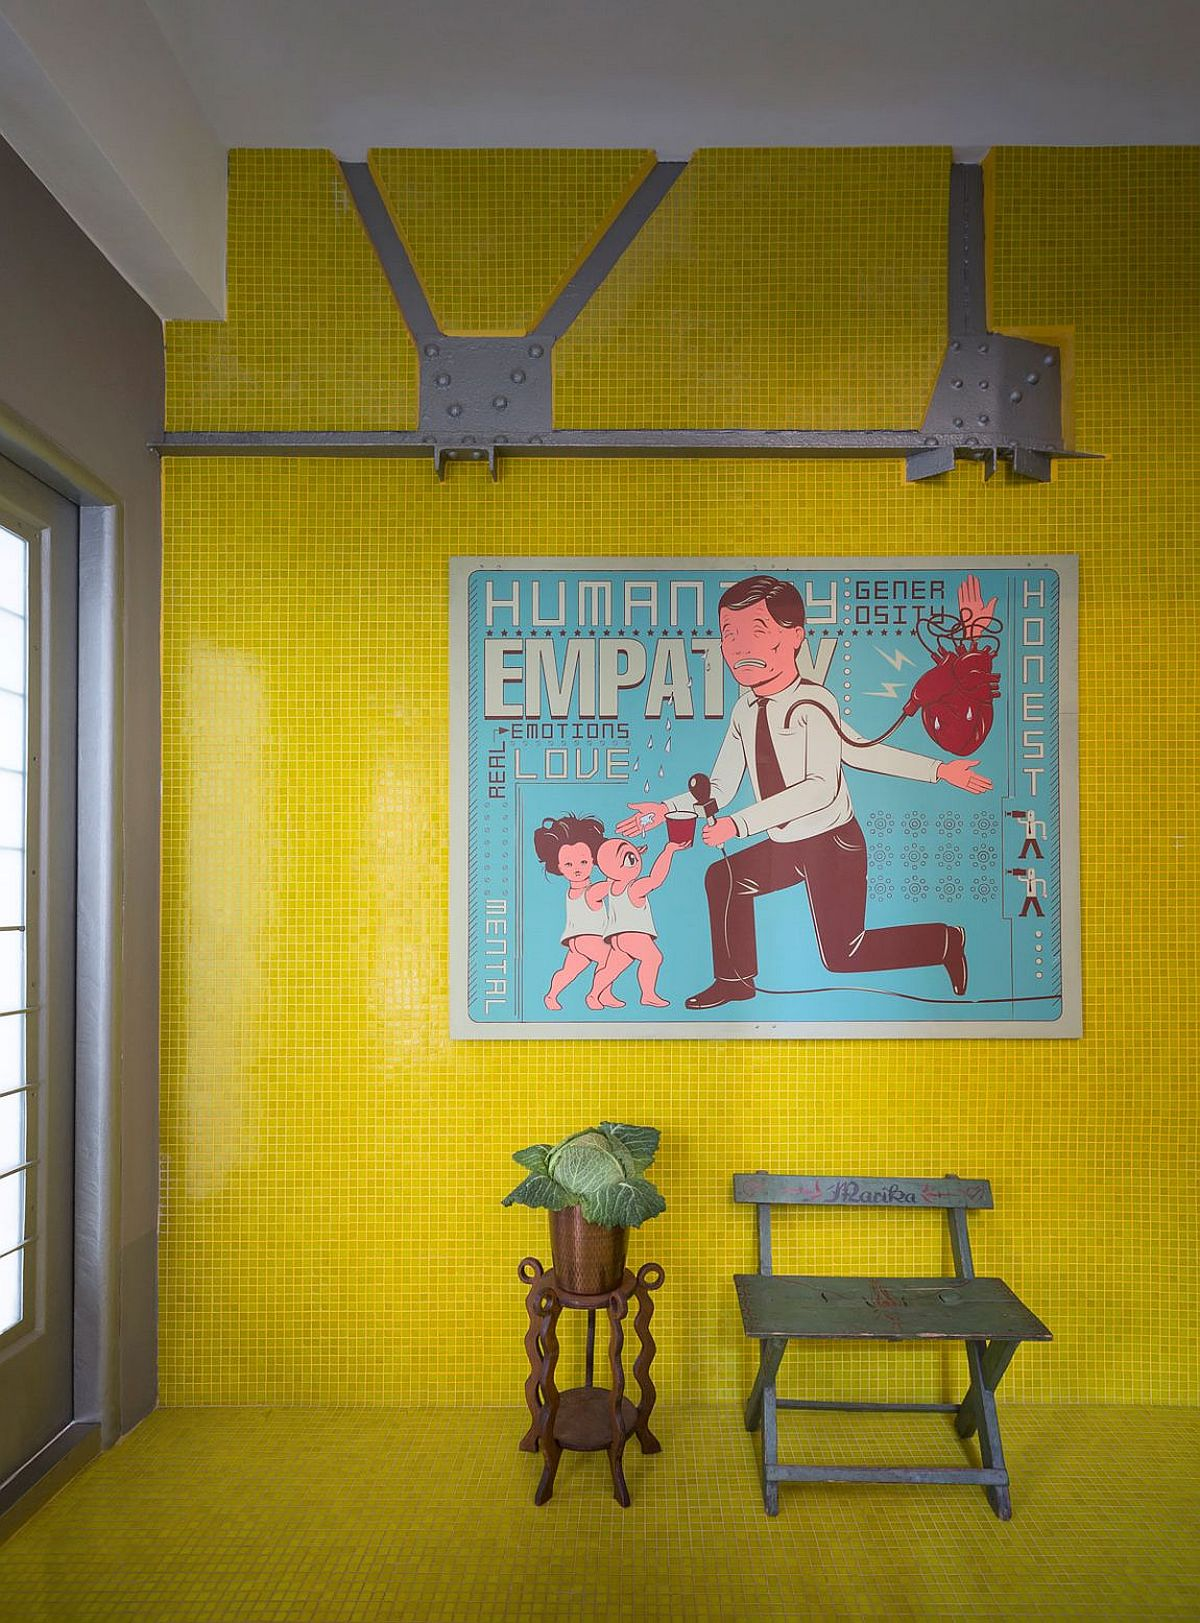 Bright yellow tiles give the interior a quirky look